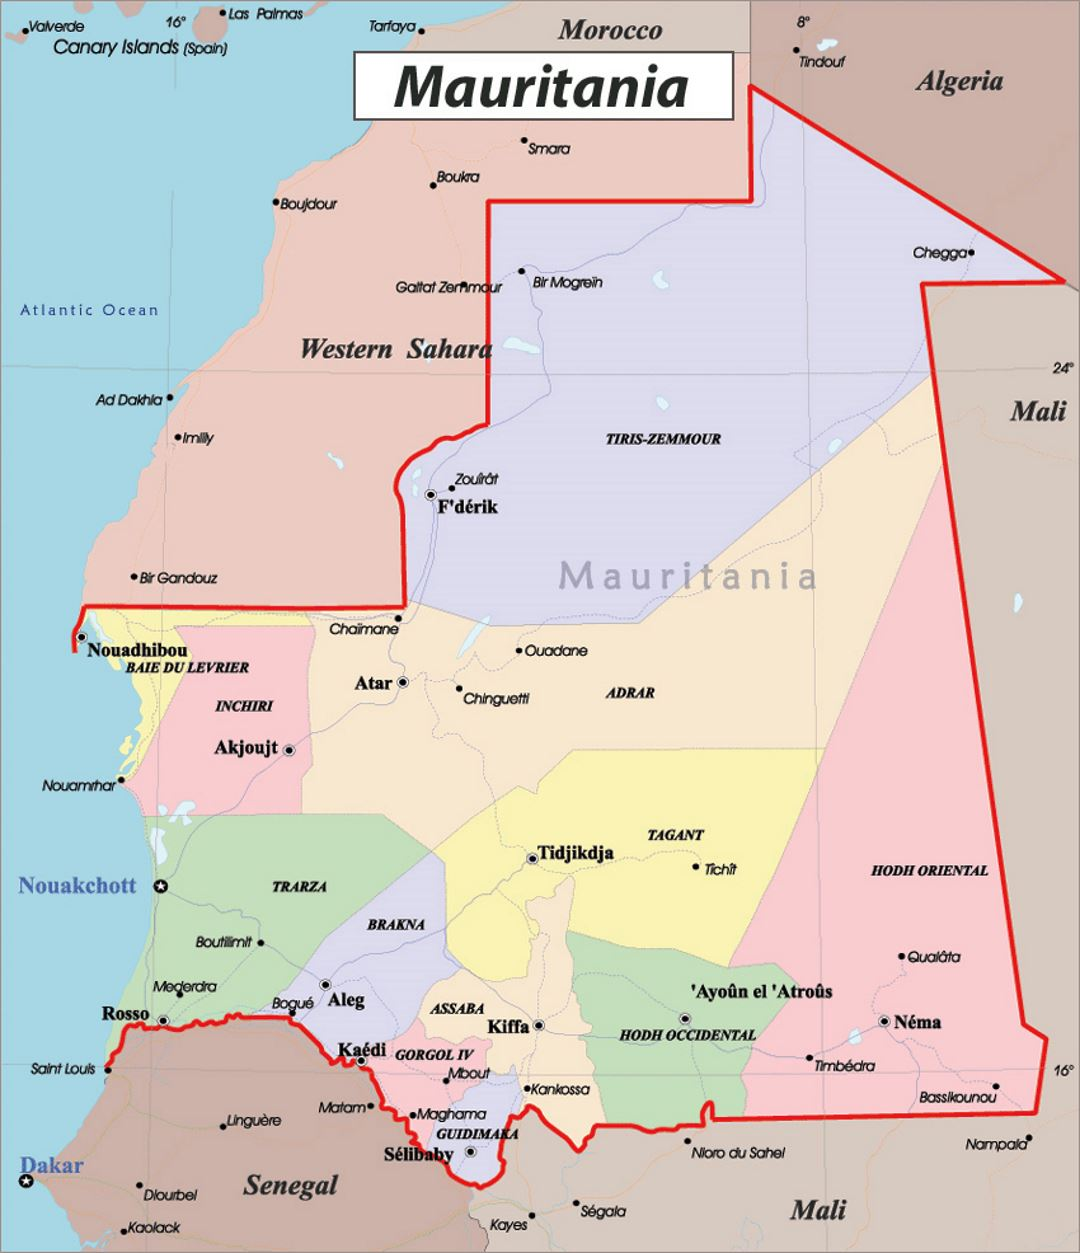 Detailed political and administrative map of Mauritania with roads and major cities